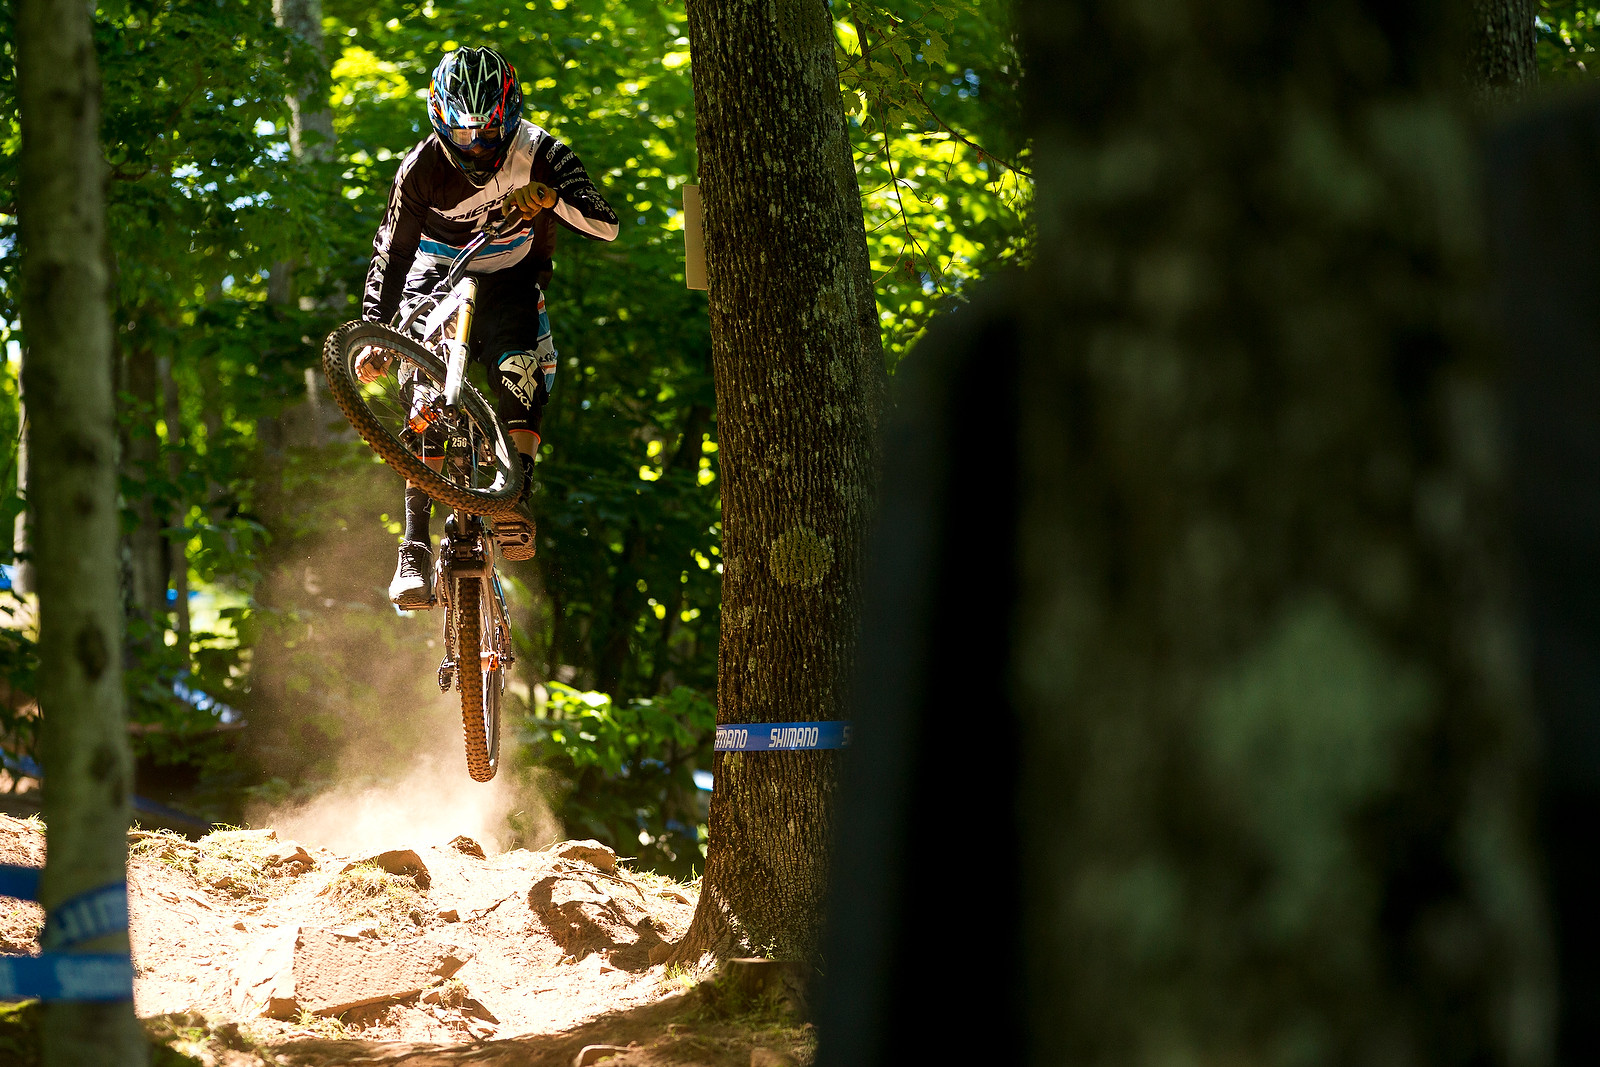 Sam Blenkinsop, Windham World Cup - 2012 UCI World Cup, Windham, New York Day 2 - Mountain Biking Pictures - Vital MTB